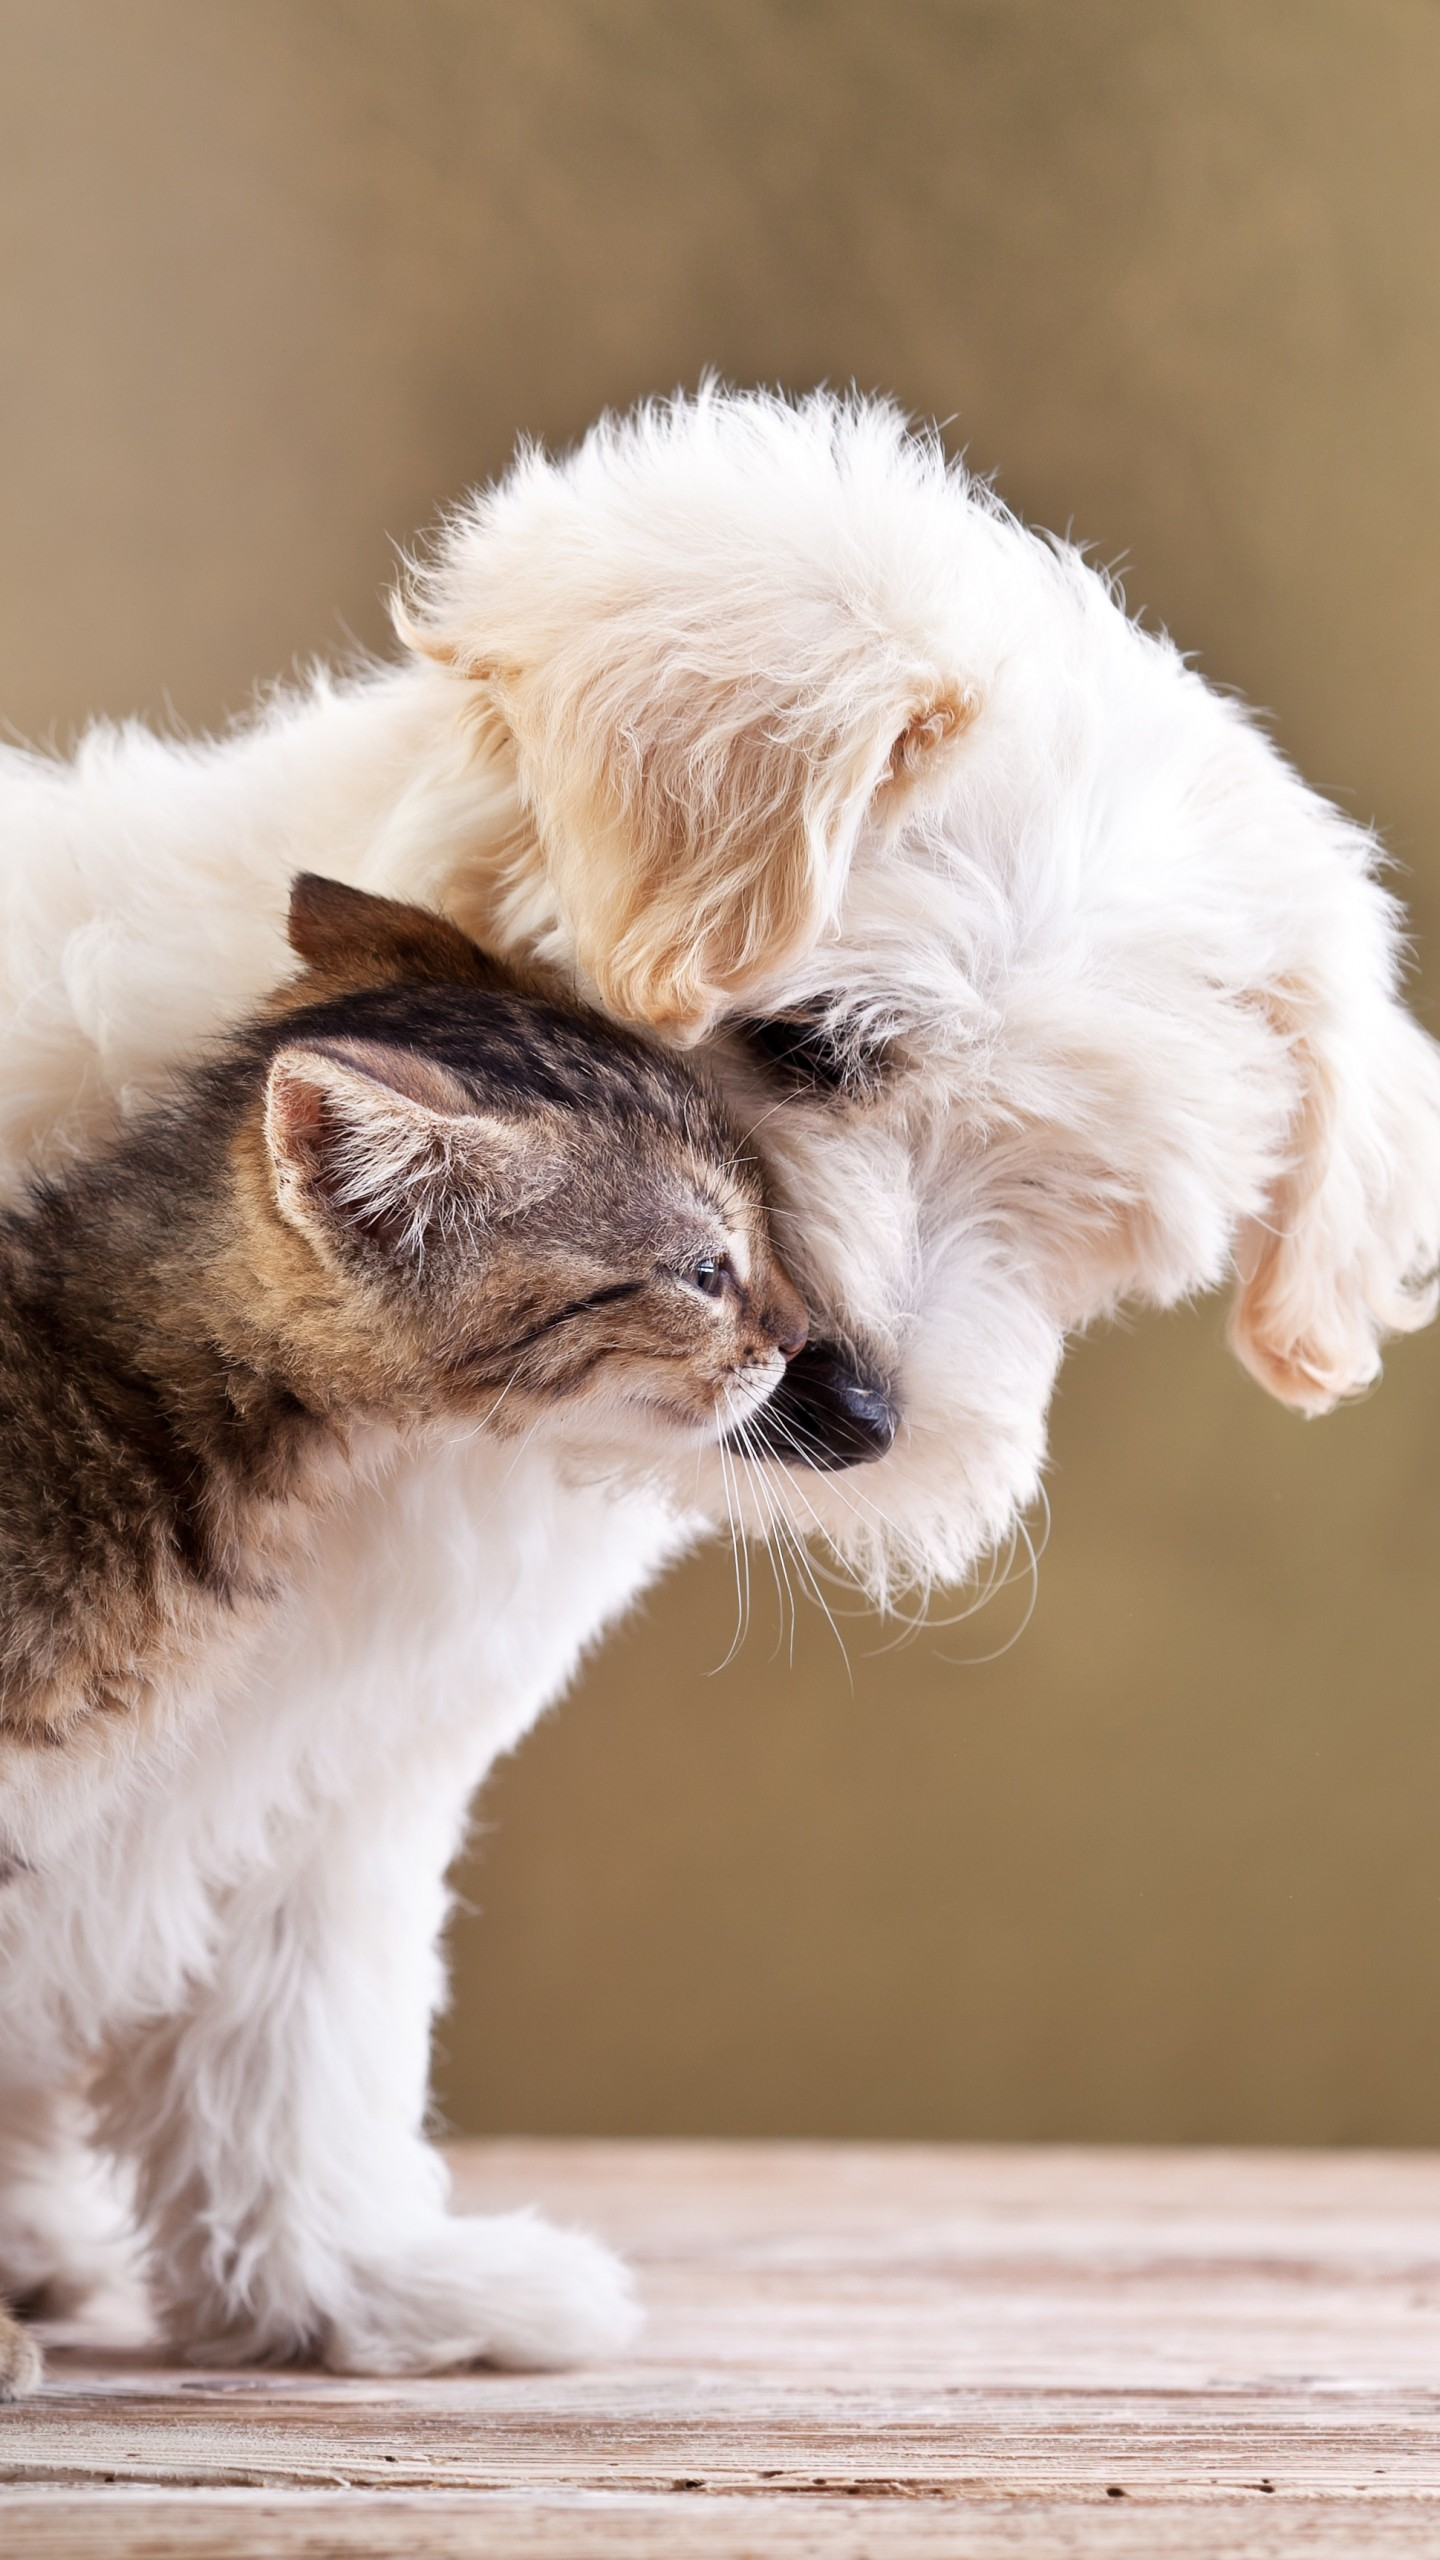 Cute puppy and kitten wallpapers 58 images - Kitten backgrounds ...